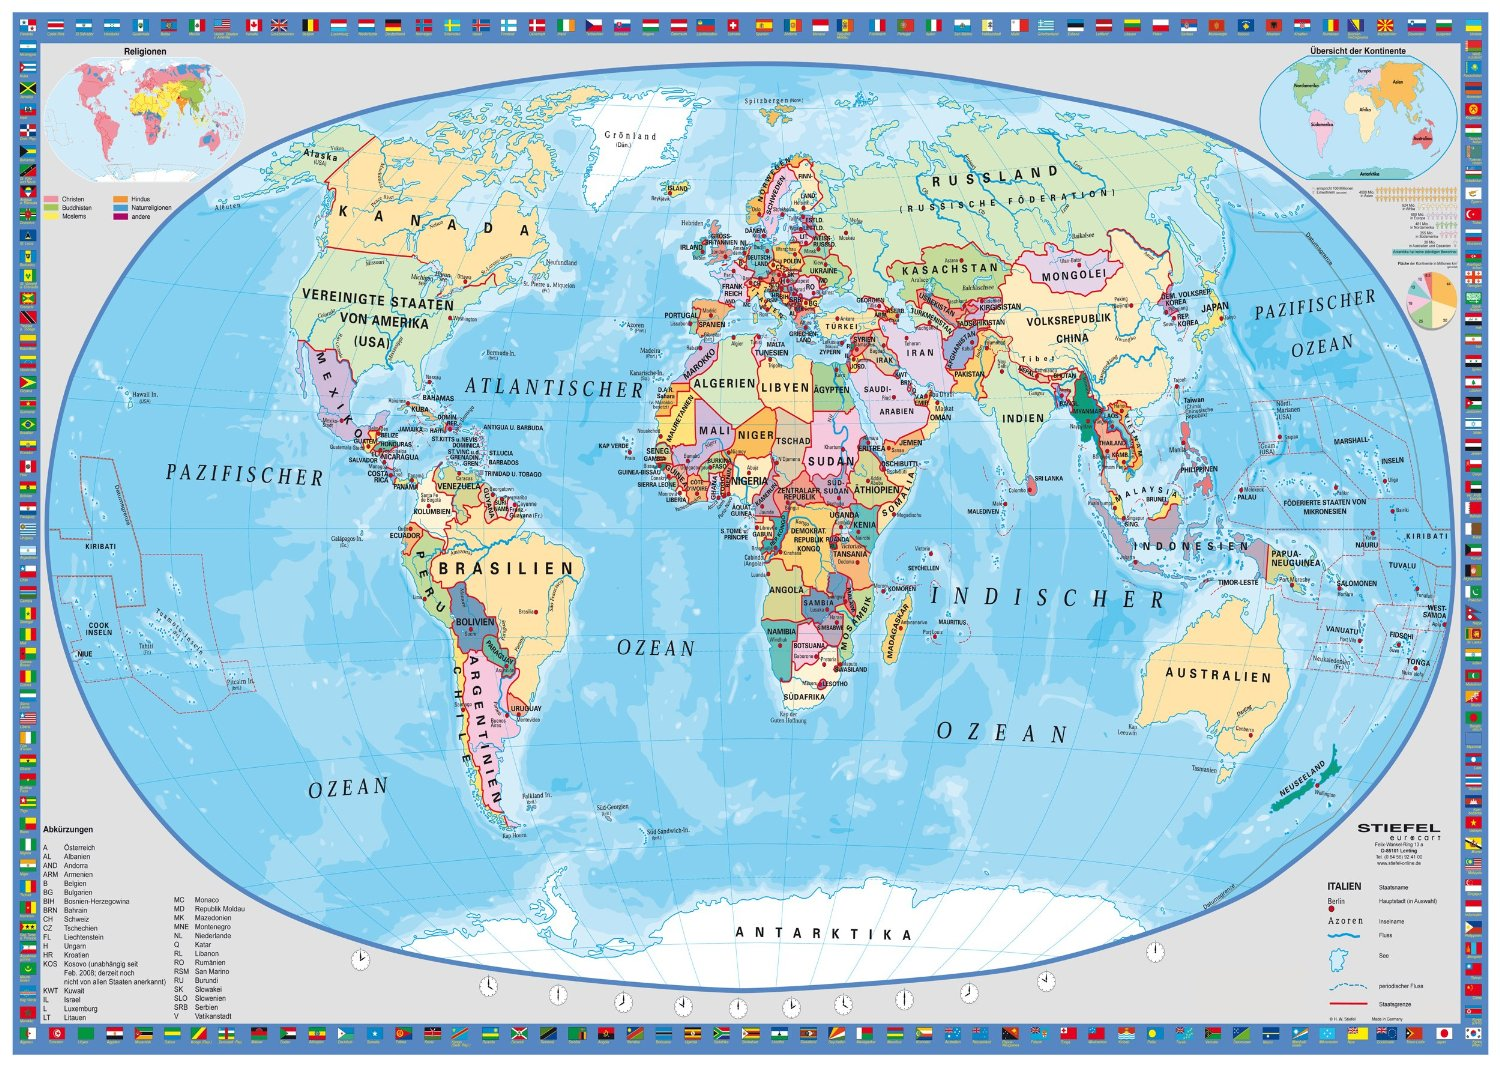 carte du monde politique 1000 teile schmidt spiele puzzle acheter en ligne. Black Bedroom Furniture Sets. Home Design Ideas